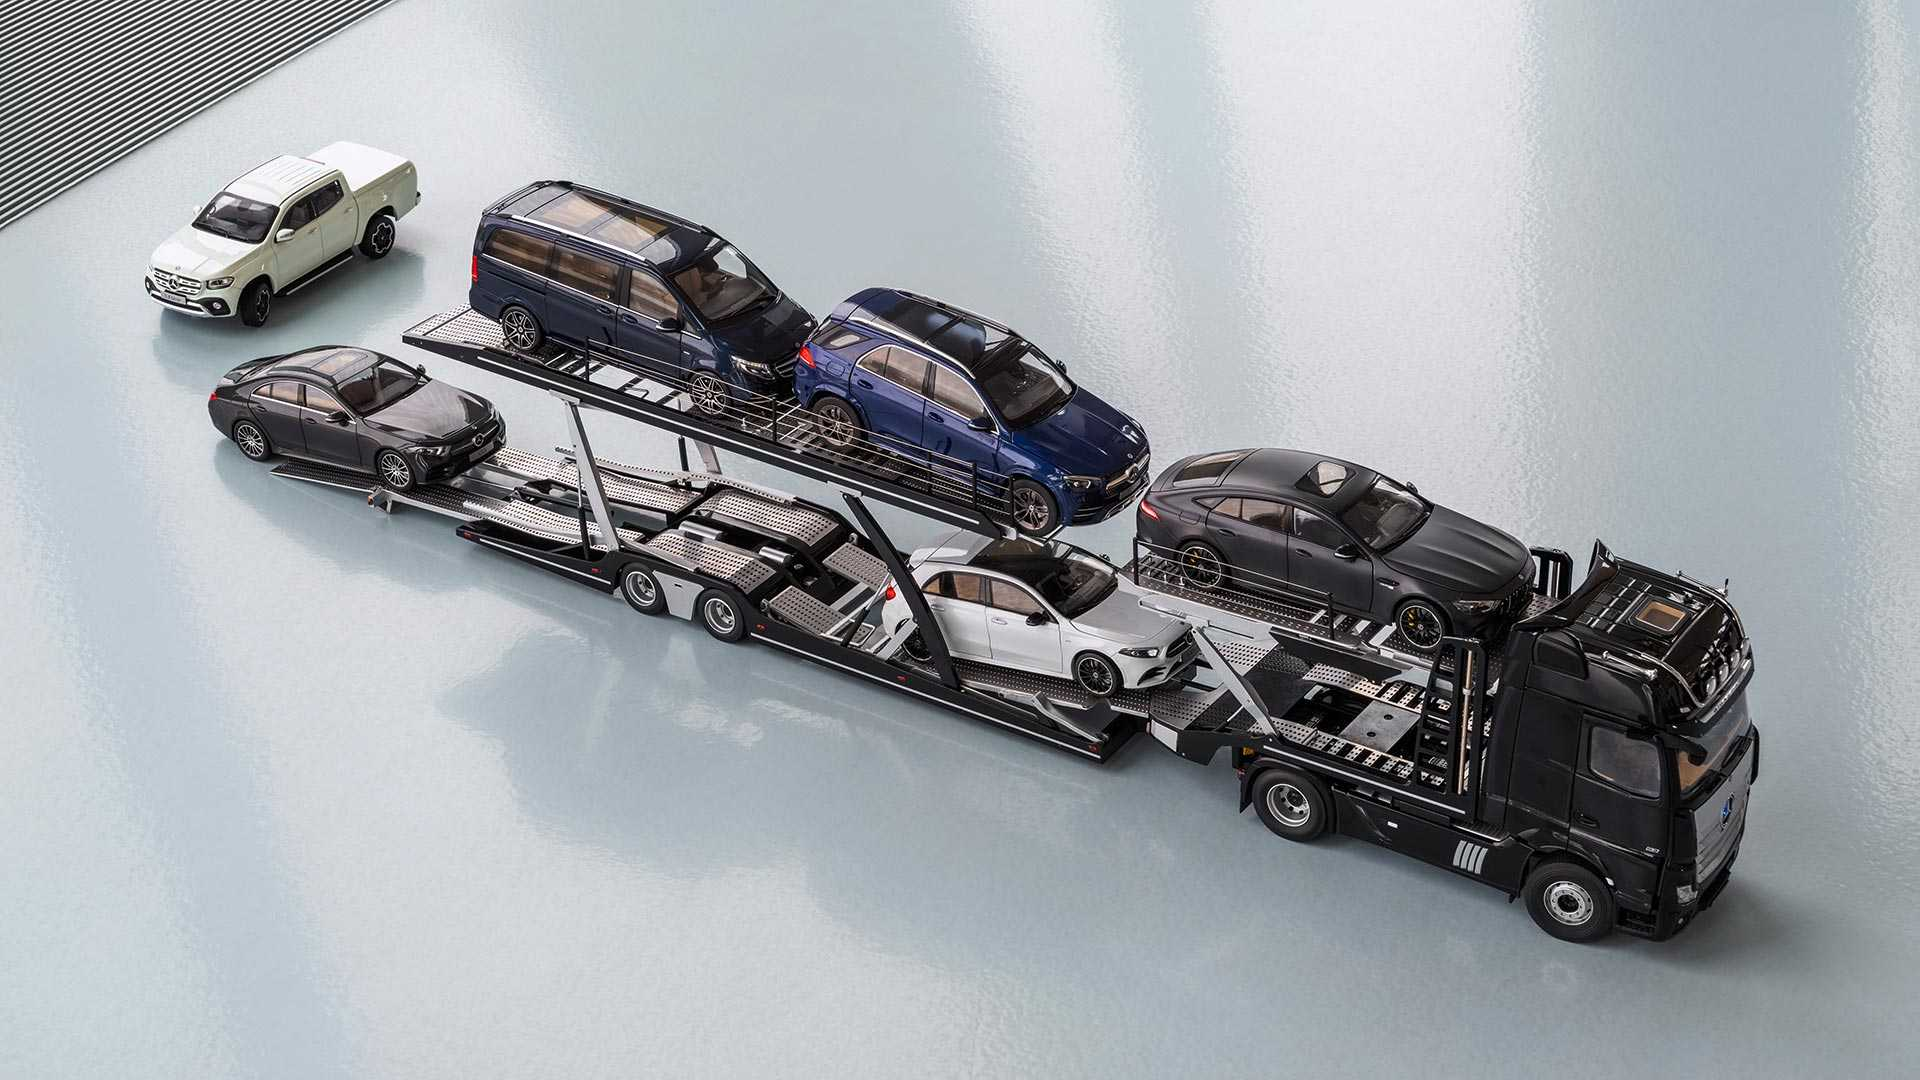 Mercedes-Benz model cars: new Actros tractor with semitrailer